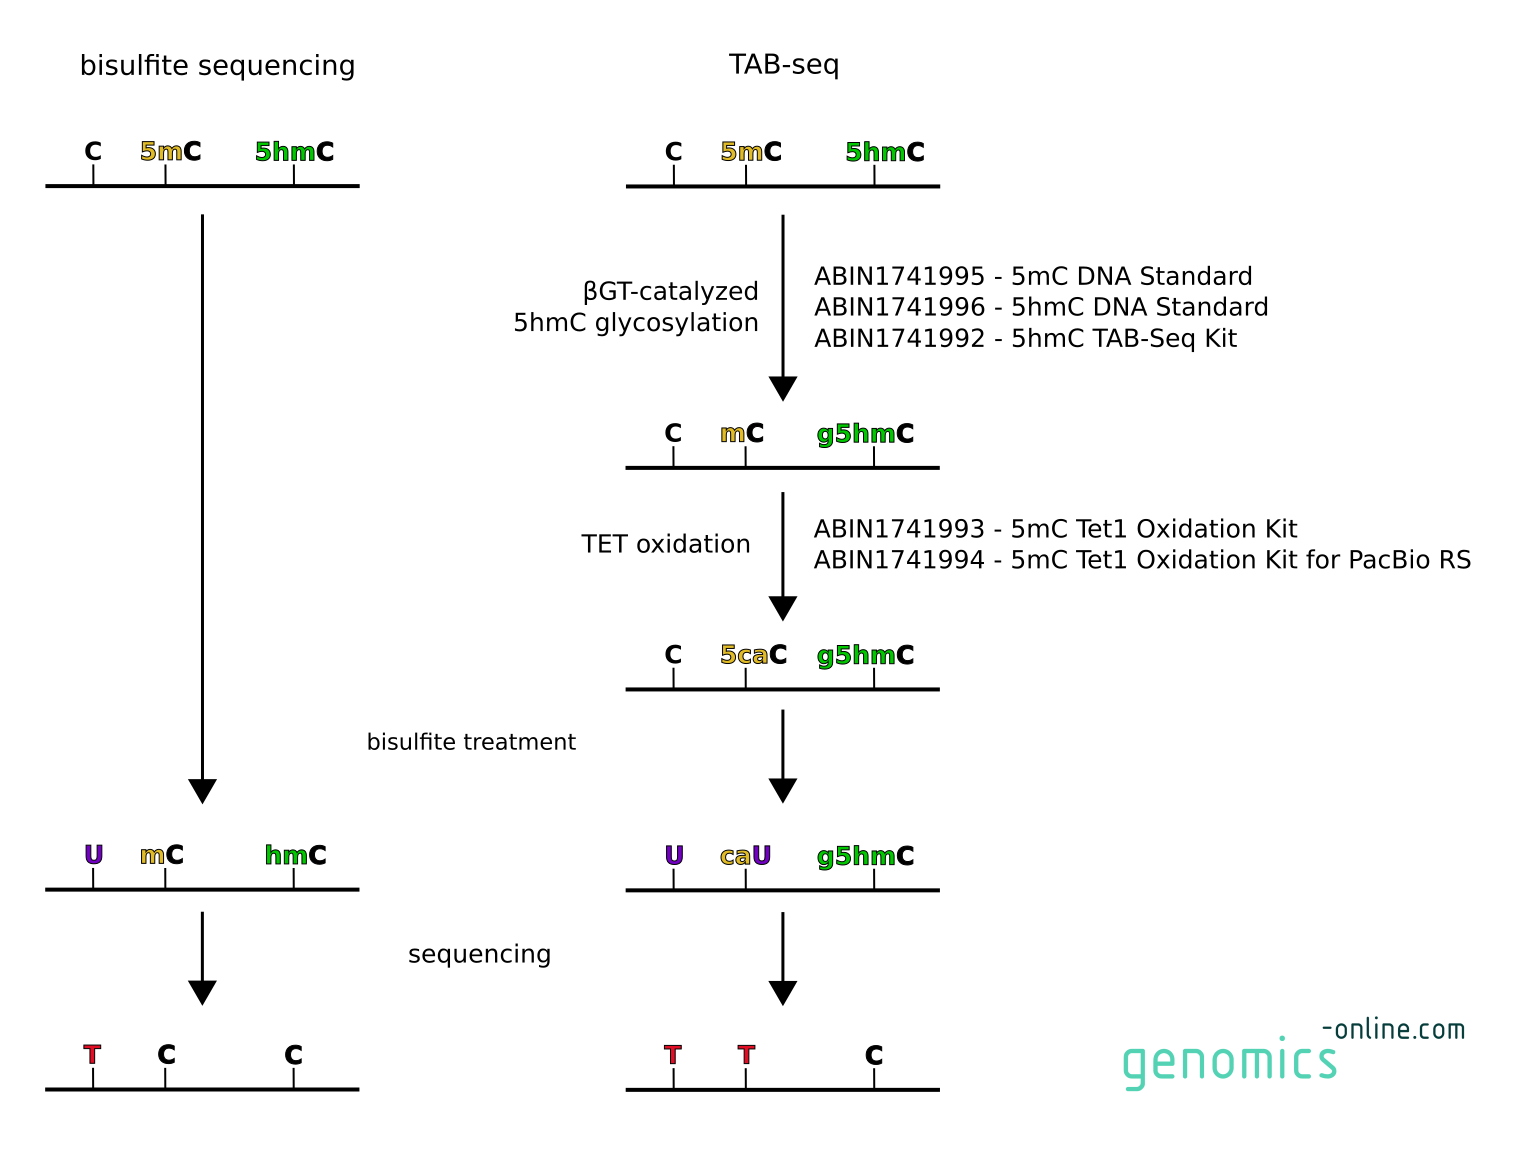 Bisulfite sequencing versus TAB-seq. genomics-online.com offers TAB-seq kits and reagents for every single step.